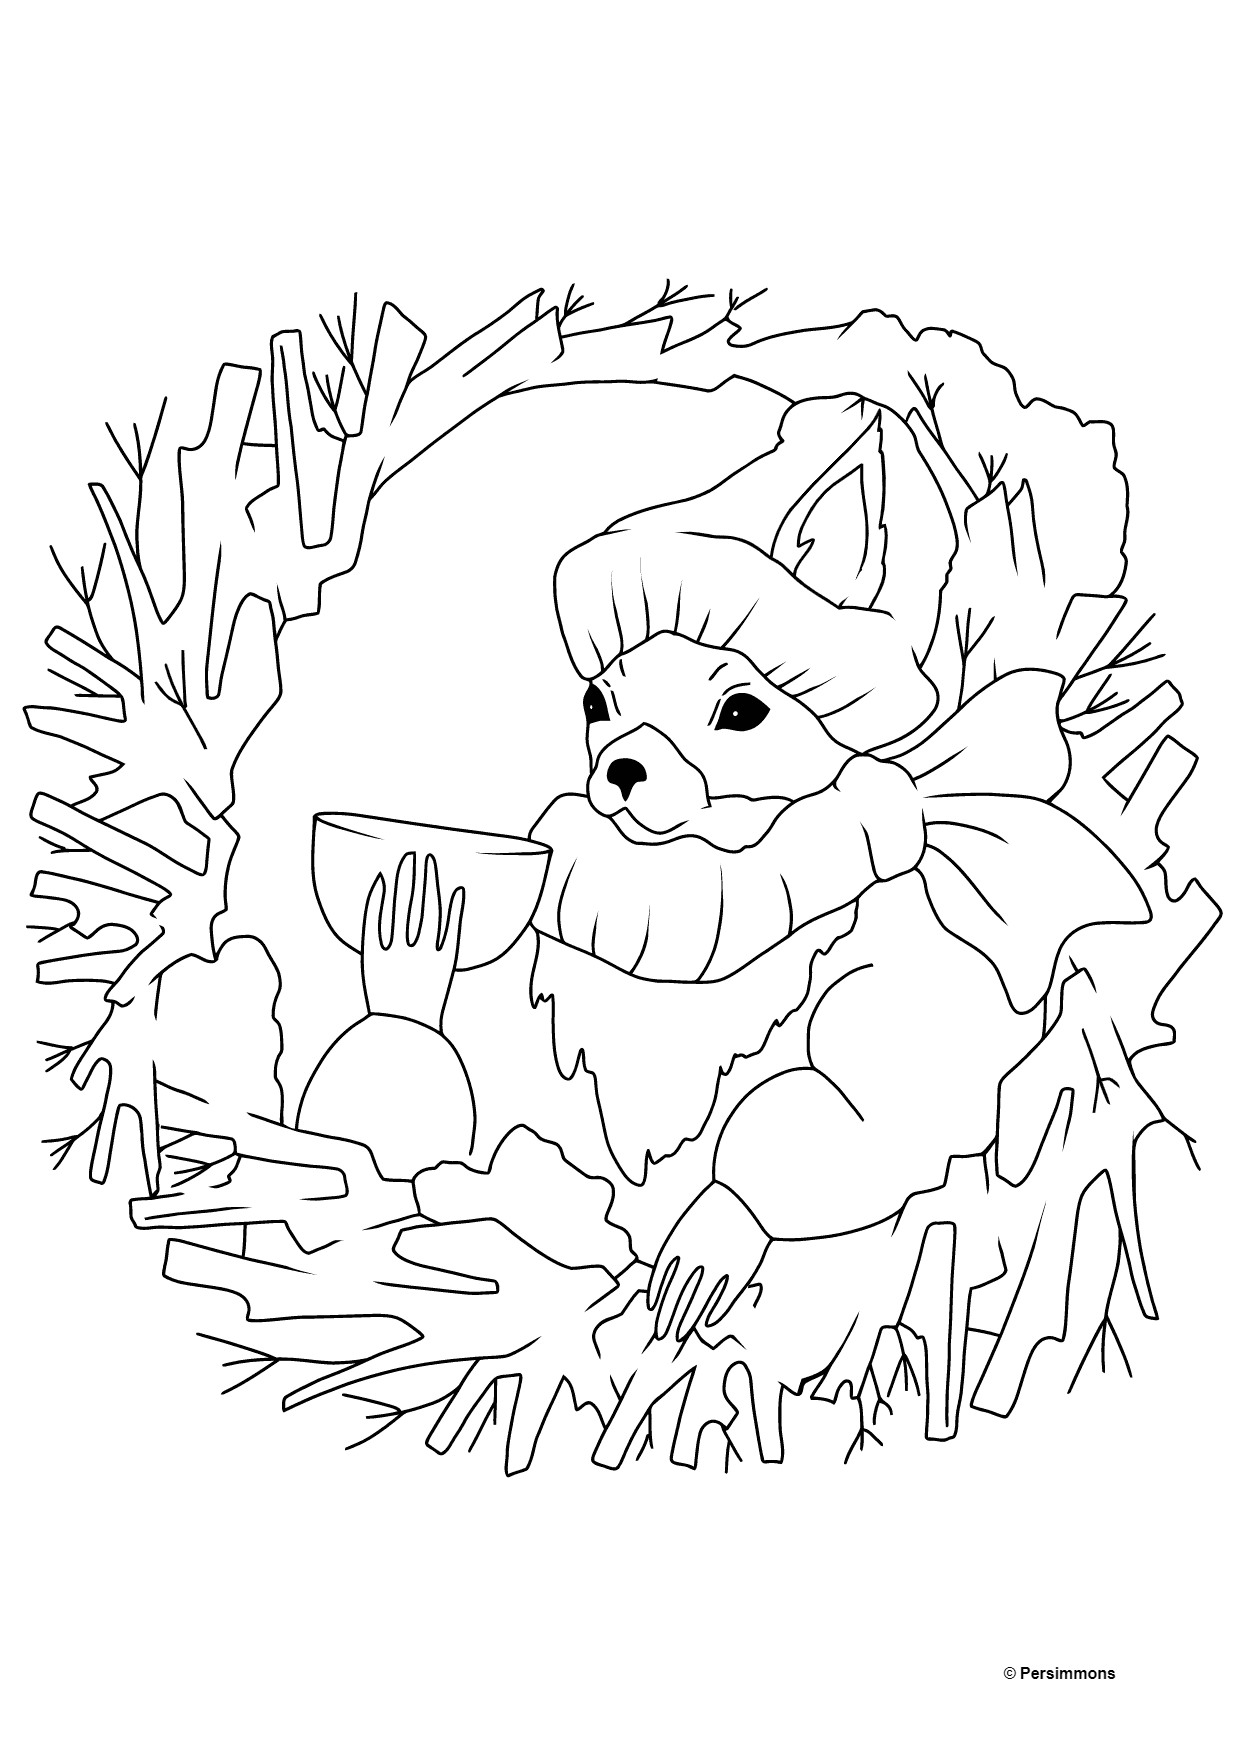 Winter Coloring Page - A Squirrel in a Cozy Burrow is Drinking Tea for Children